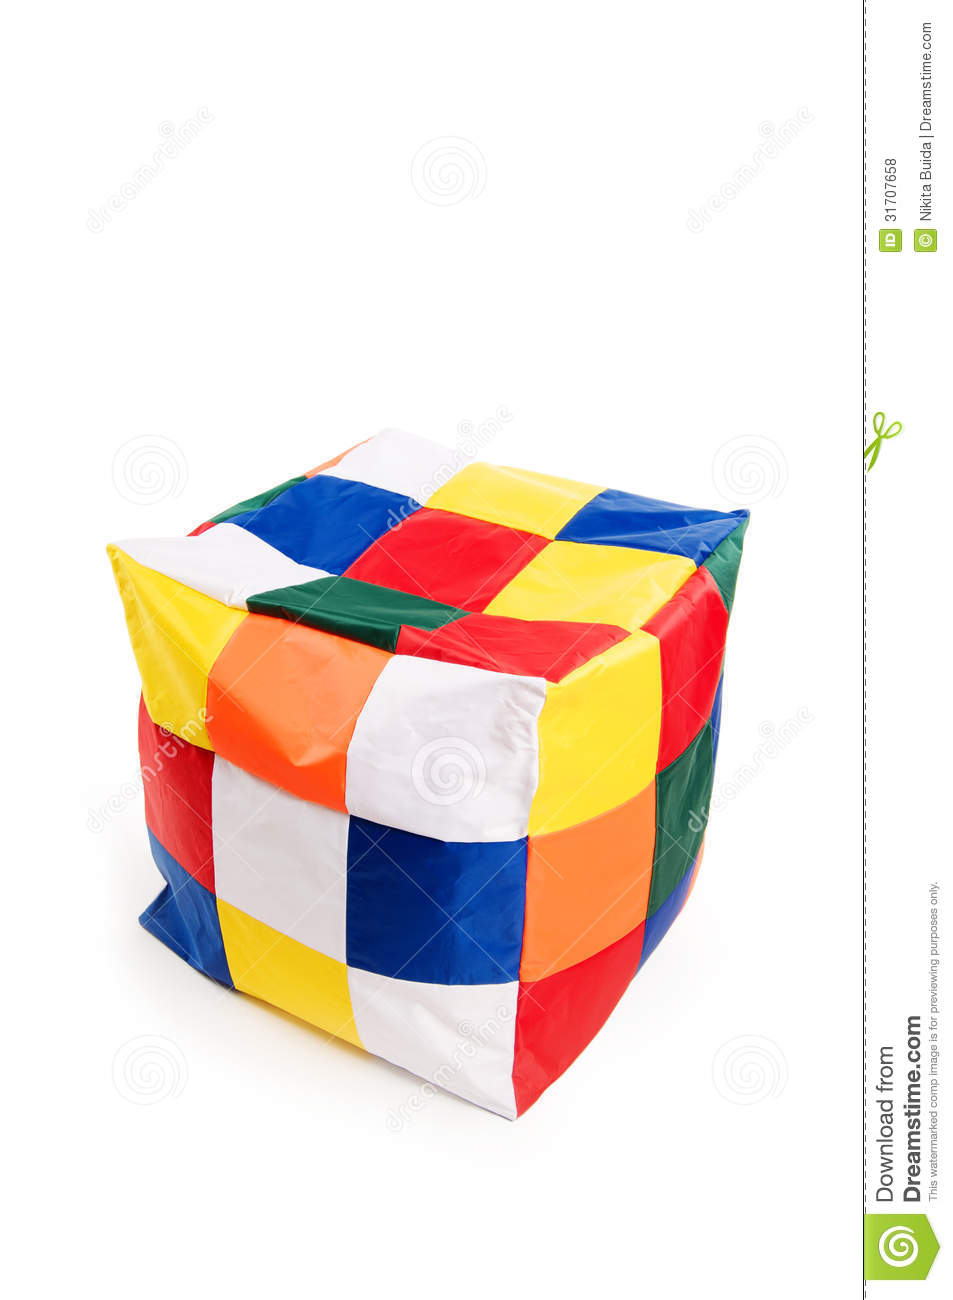 Marvelous Nice And Soft Beanbag Chair In Shape Of Cube Stock Photo Evergreenethics Interior Chair Design Evergreenethicsorg